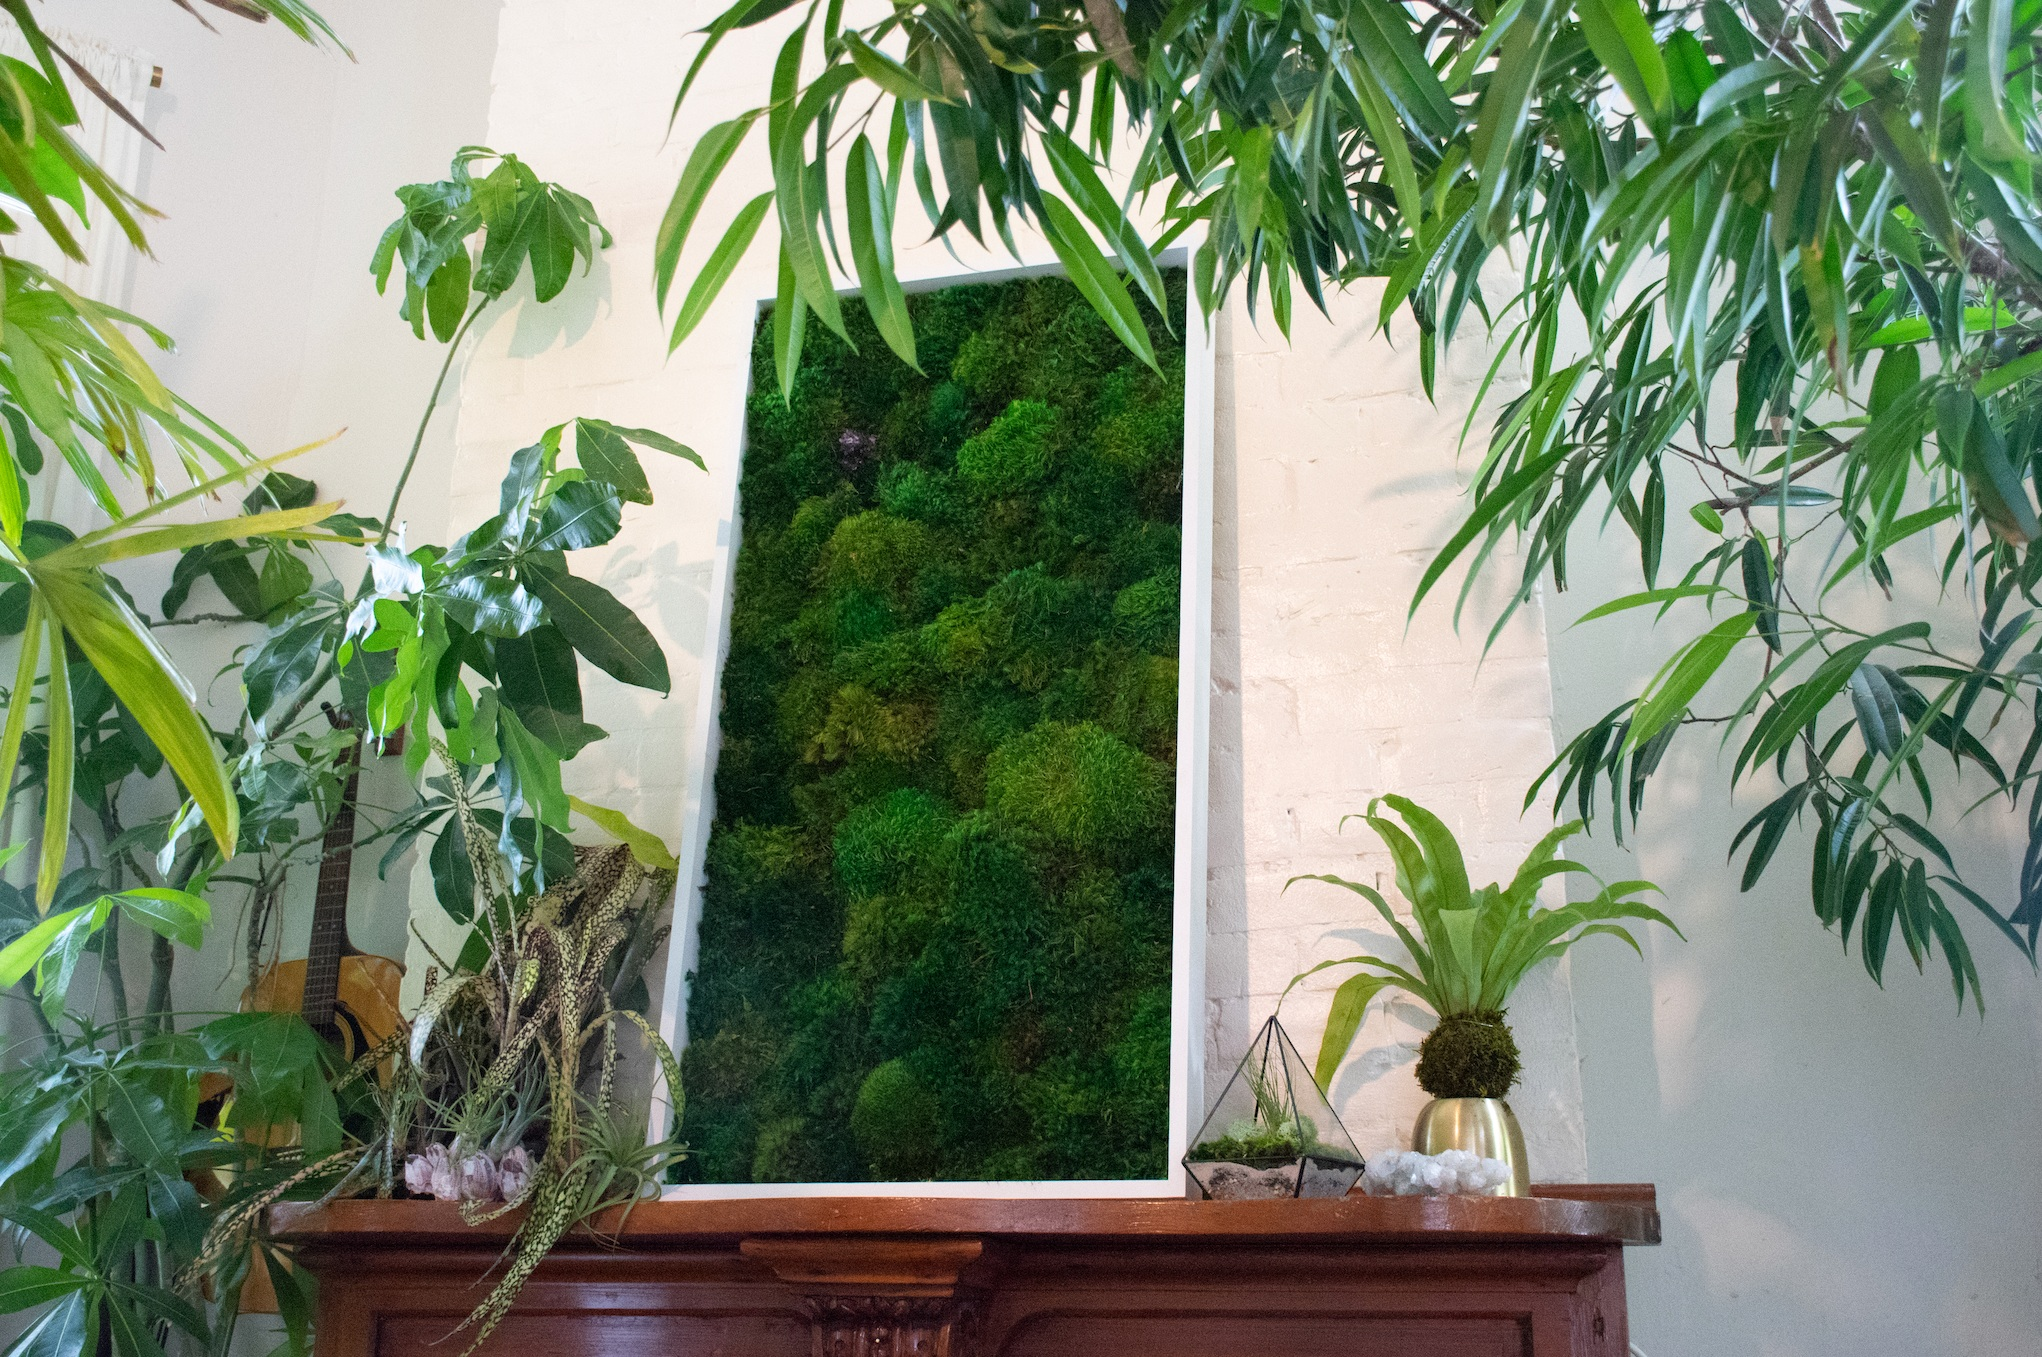 GROW A FOREST - High style, low maintenance plant curations that create instant impact and continued growth to your space.